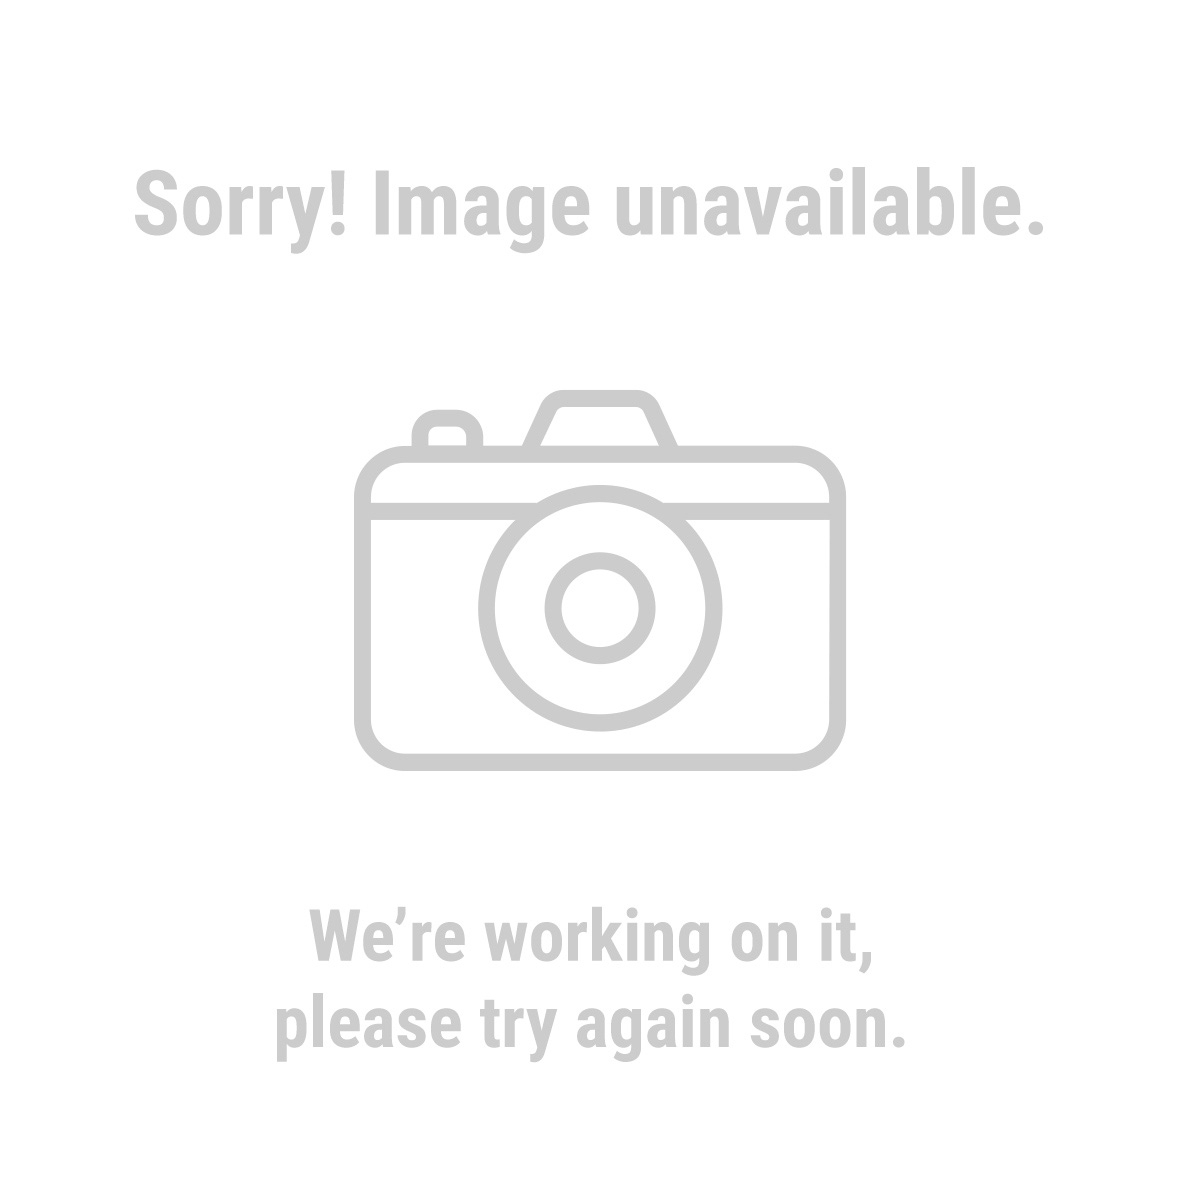 Chicago Electric 96709 50 Ft. 12 Gauge Triple Tap Extension Cord with Indicator Light